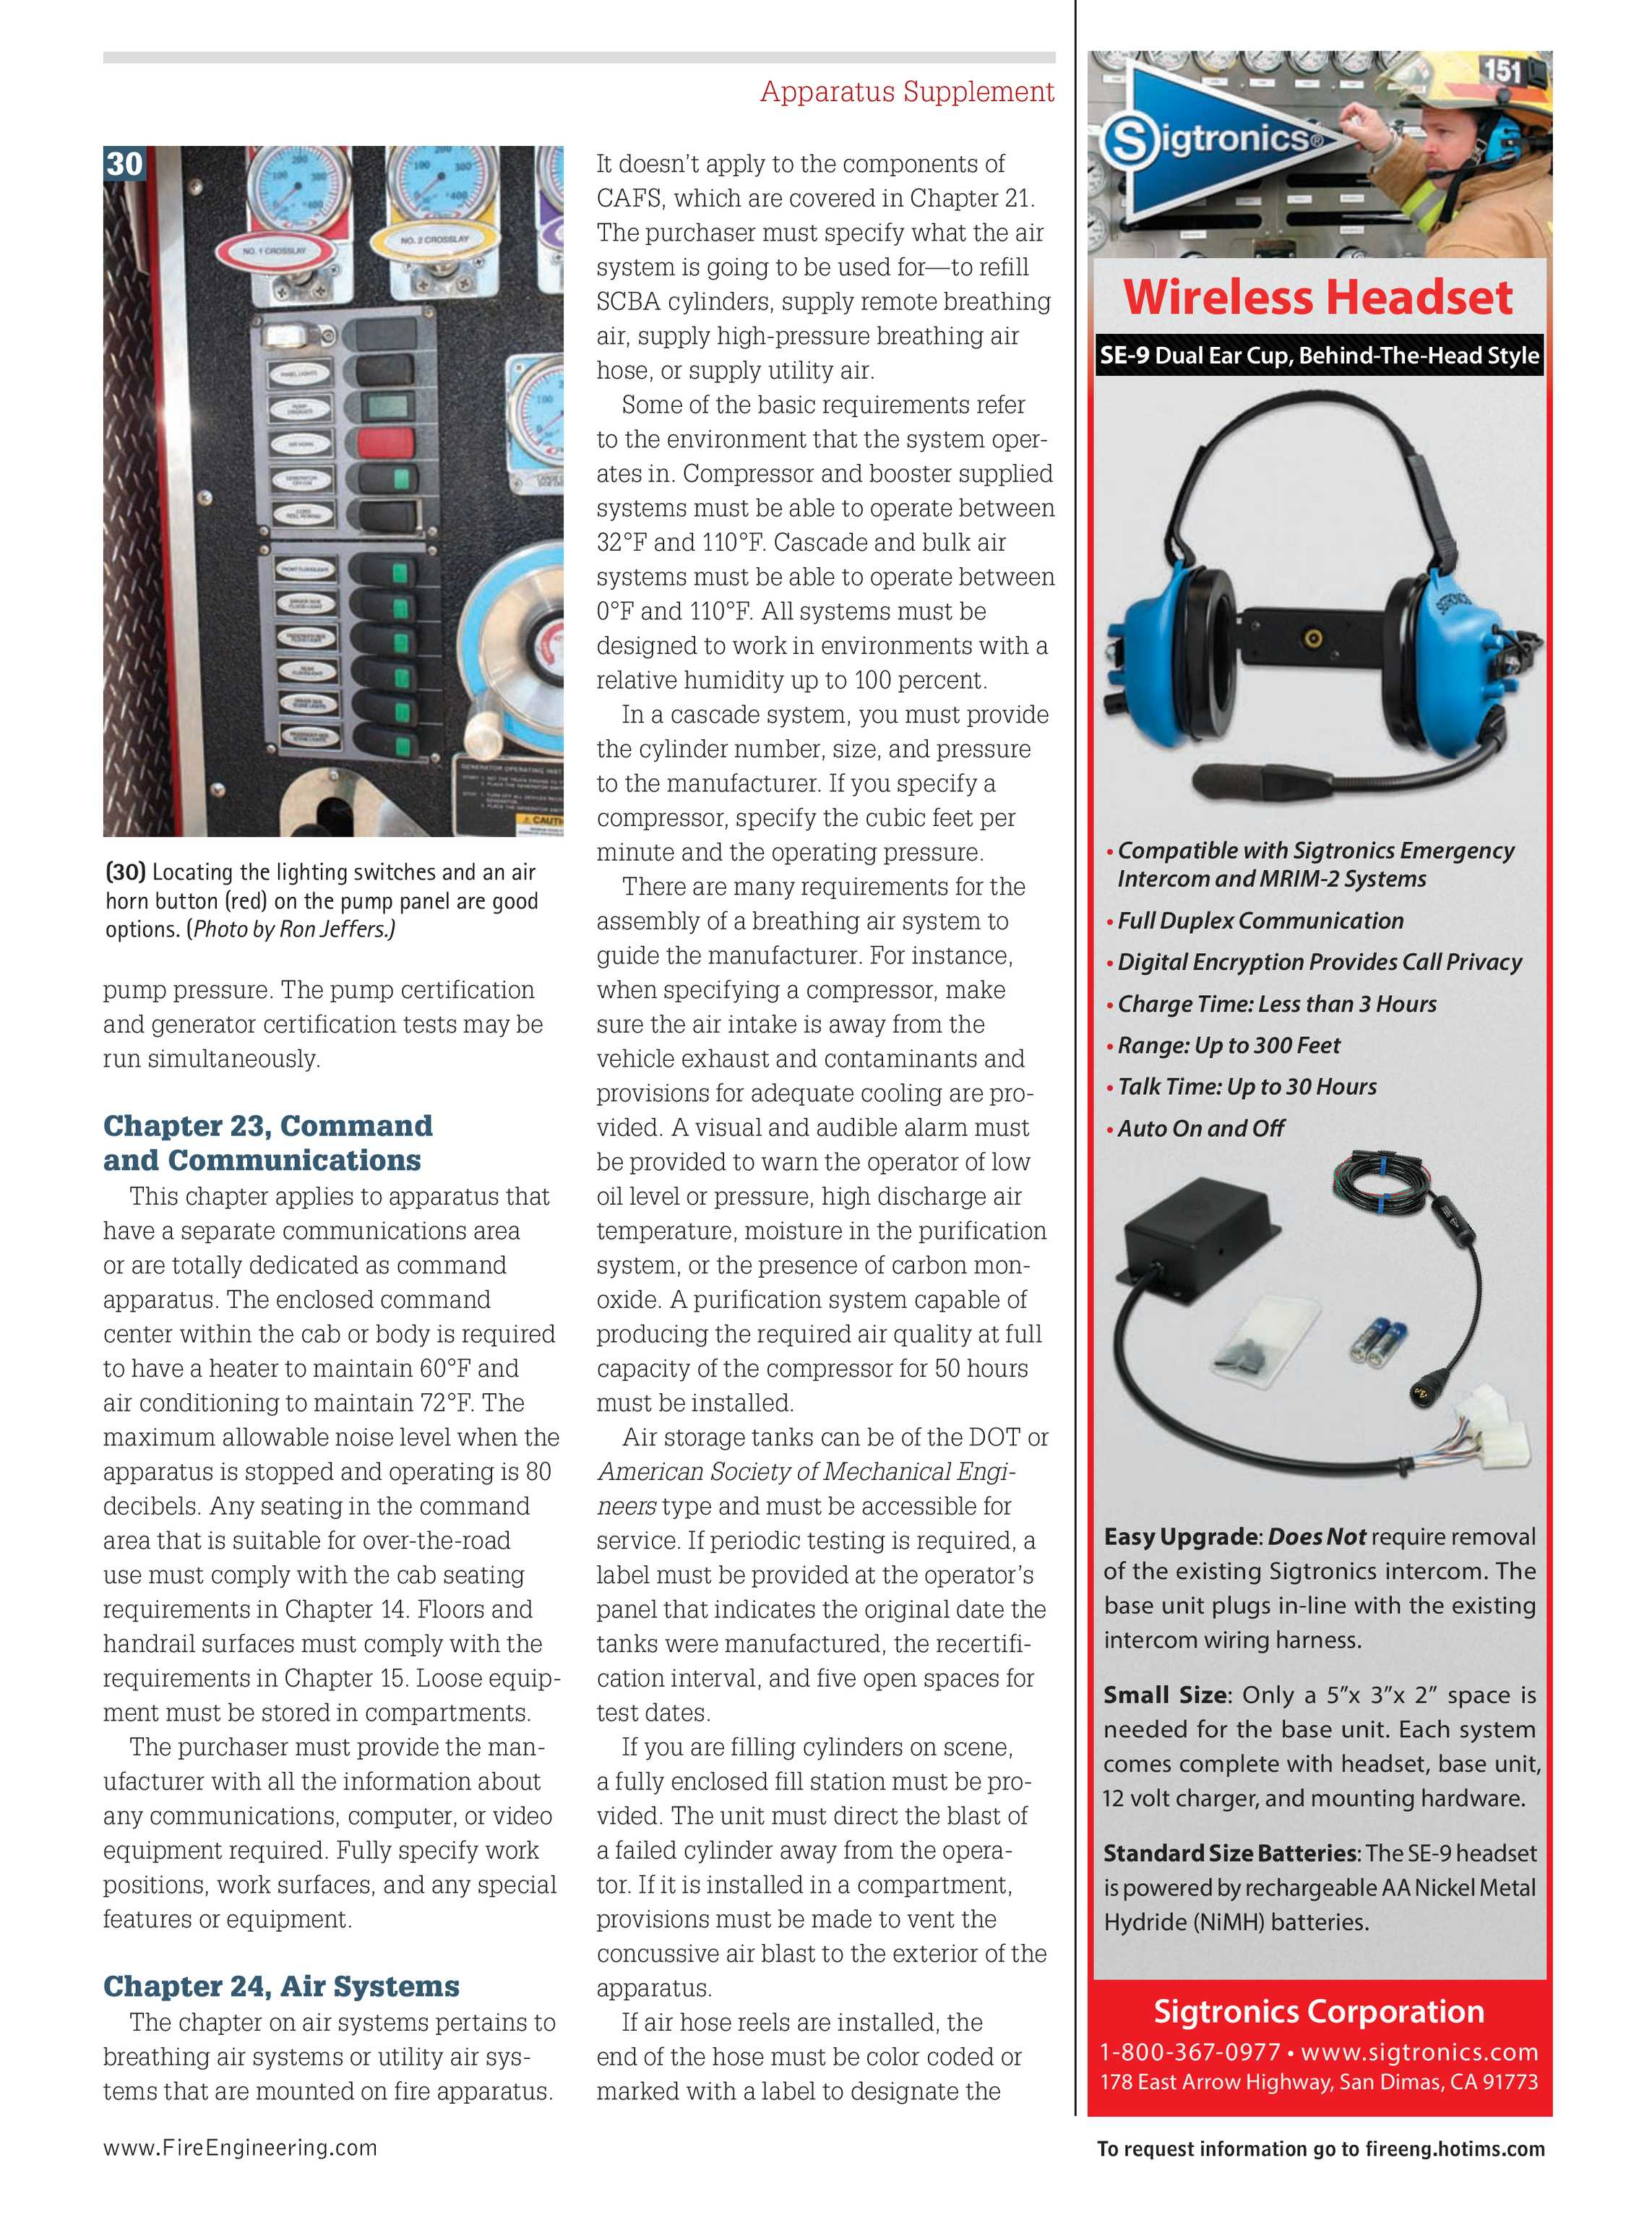 Fire Engineering June 2017 Page S29 Simple Two Way Communication Intercom Circuit Schematic Diagram